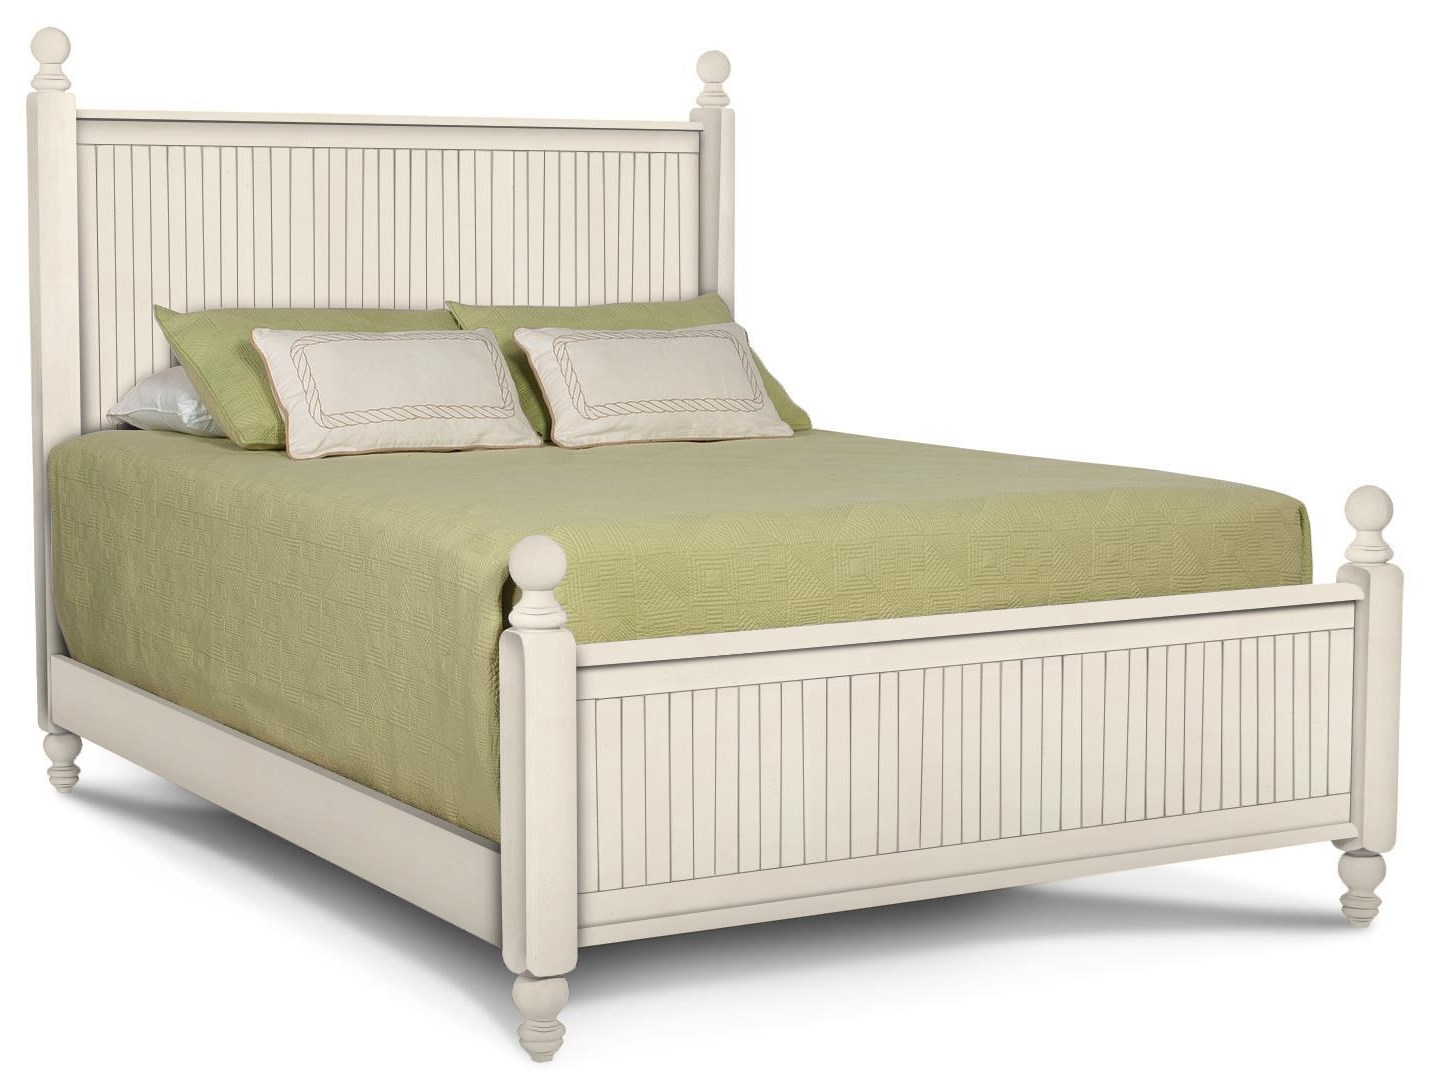 Cottage Bedroom Queen Bed by John Thomas at Johnny Janosik